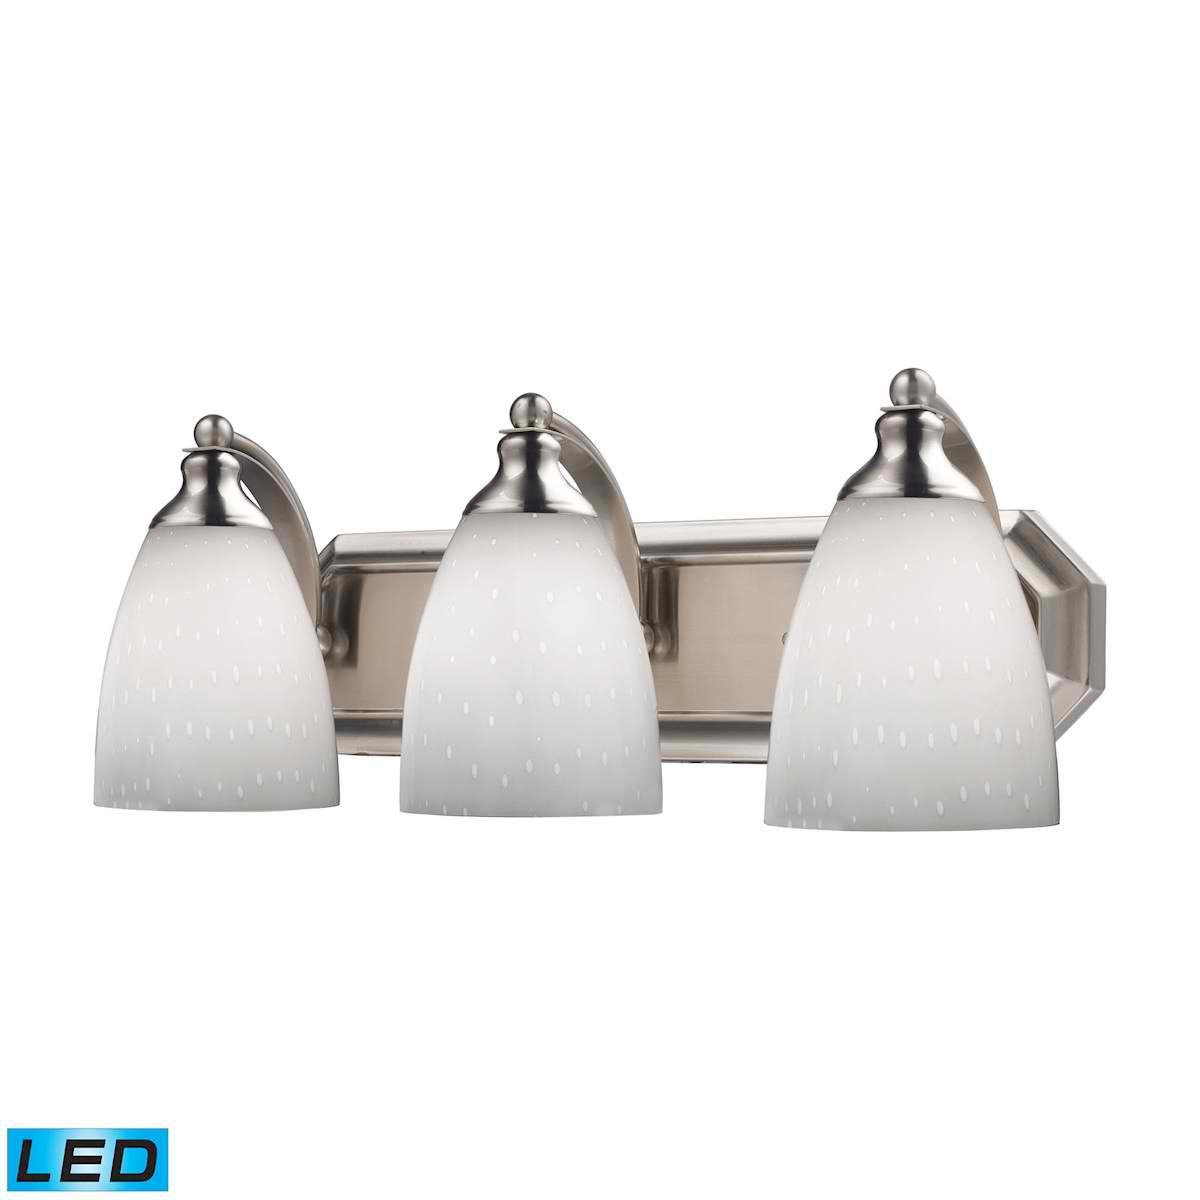 3 Light Vanity in Satin Nickel and Simply White Glass - LED, 800 Lumens (2400 Lumens Total) with Full Scale